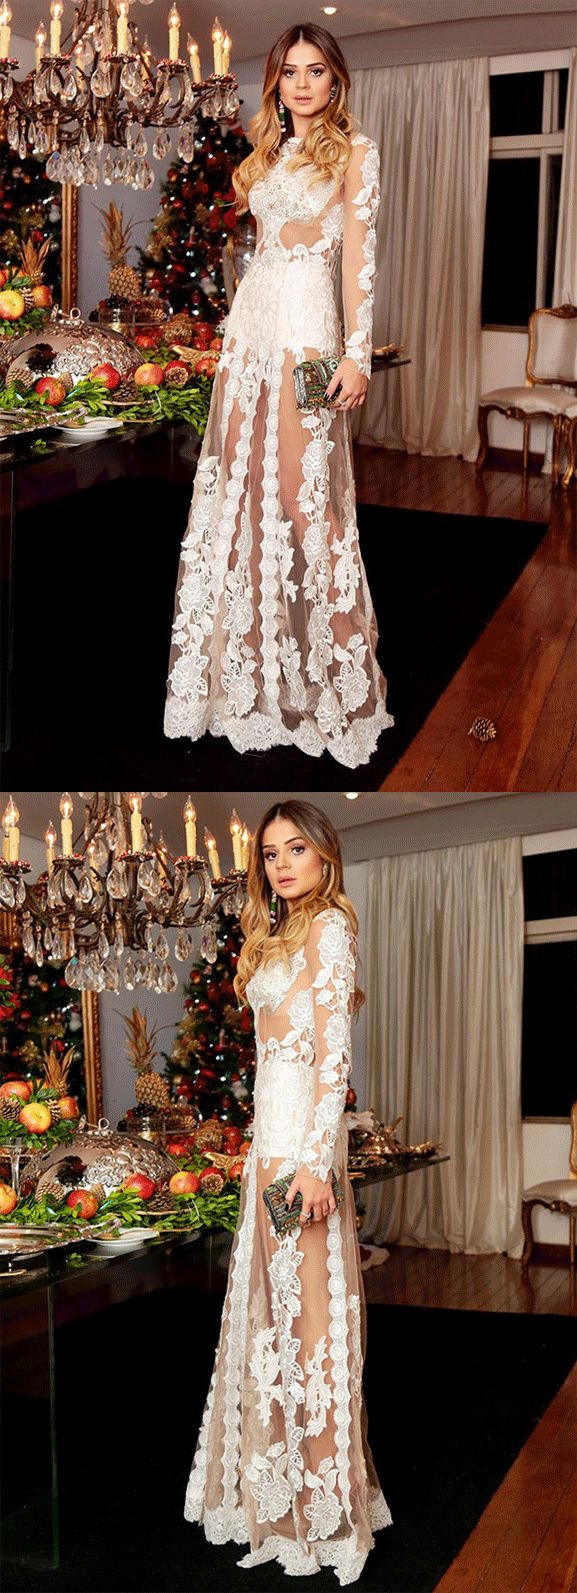 A-Line Jewel Long Sleeves Floor-Length White Tulle Prom Dress – Maria Clara Guanho